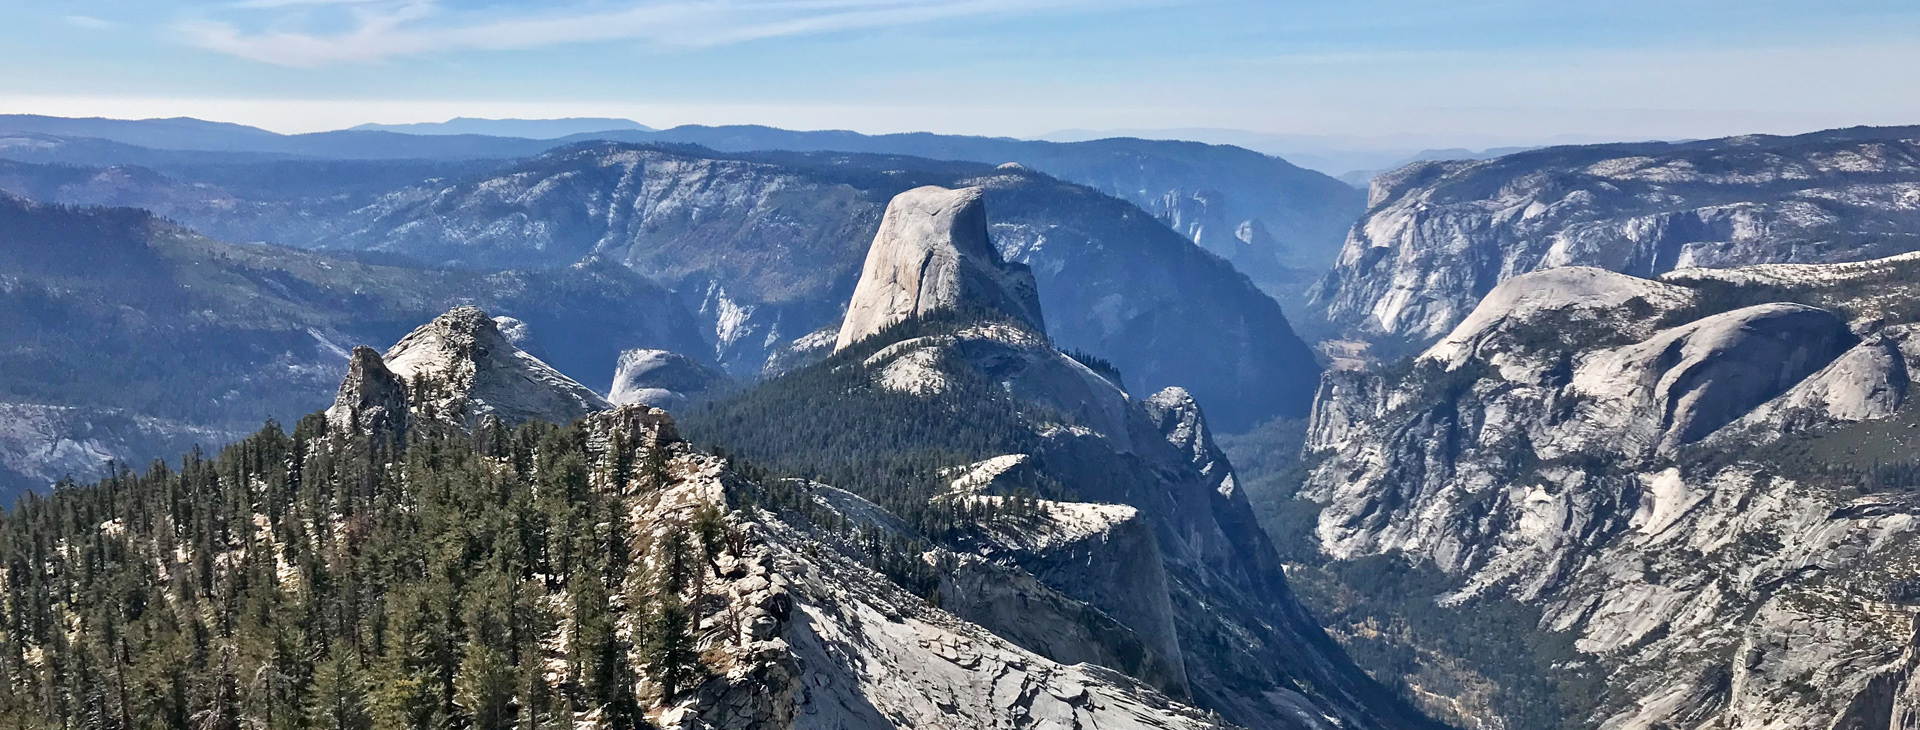 TCBC - View from Clouds Rest, Yosemite National Park